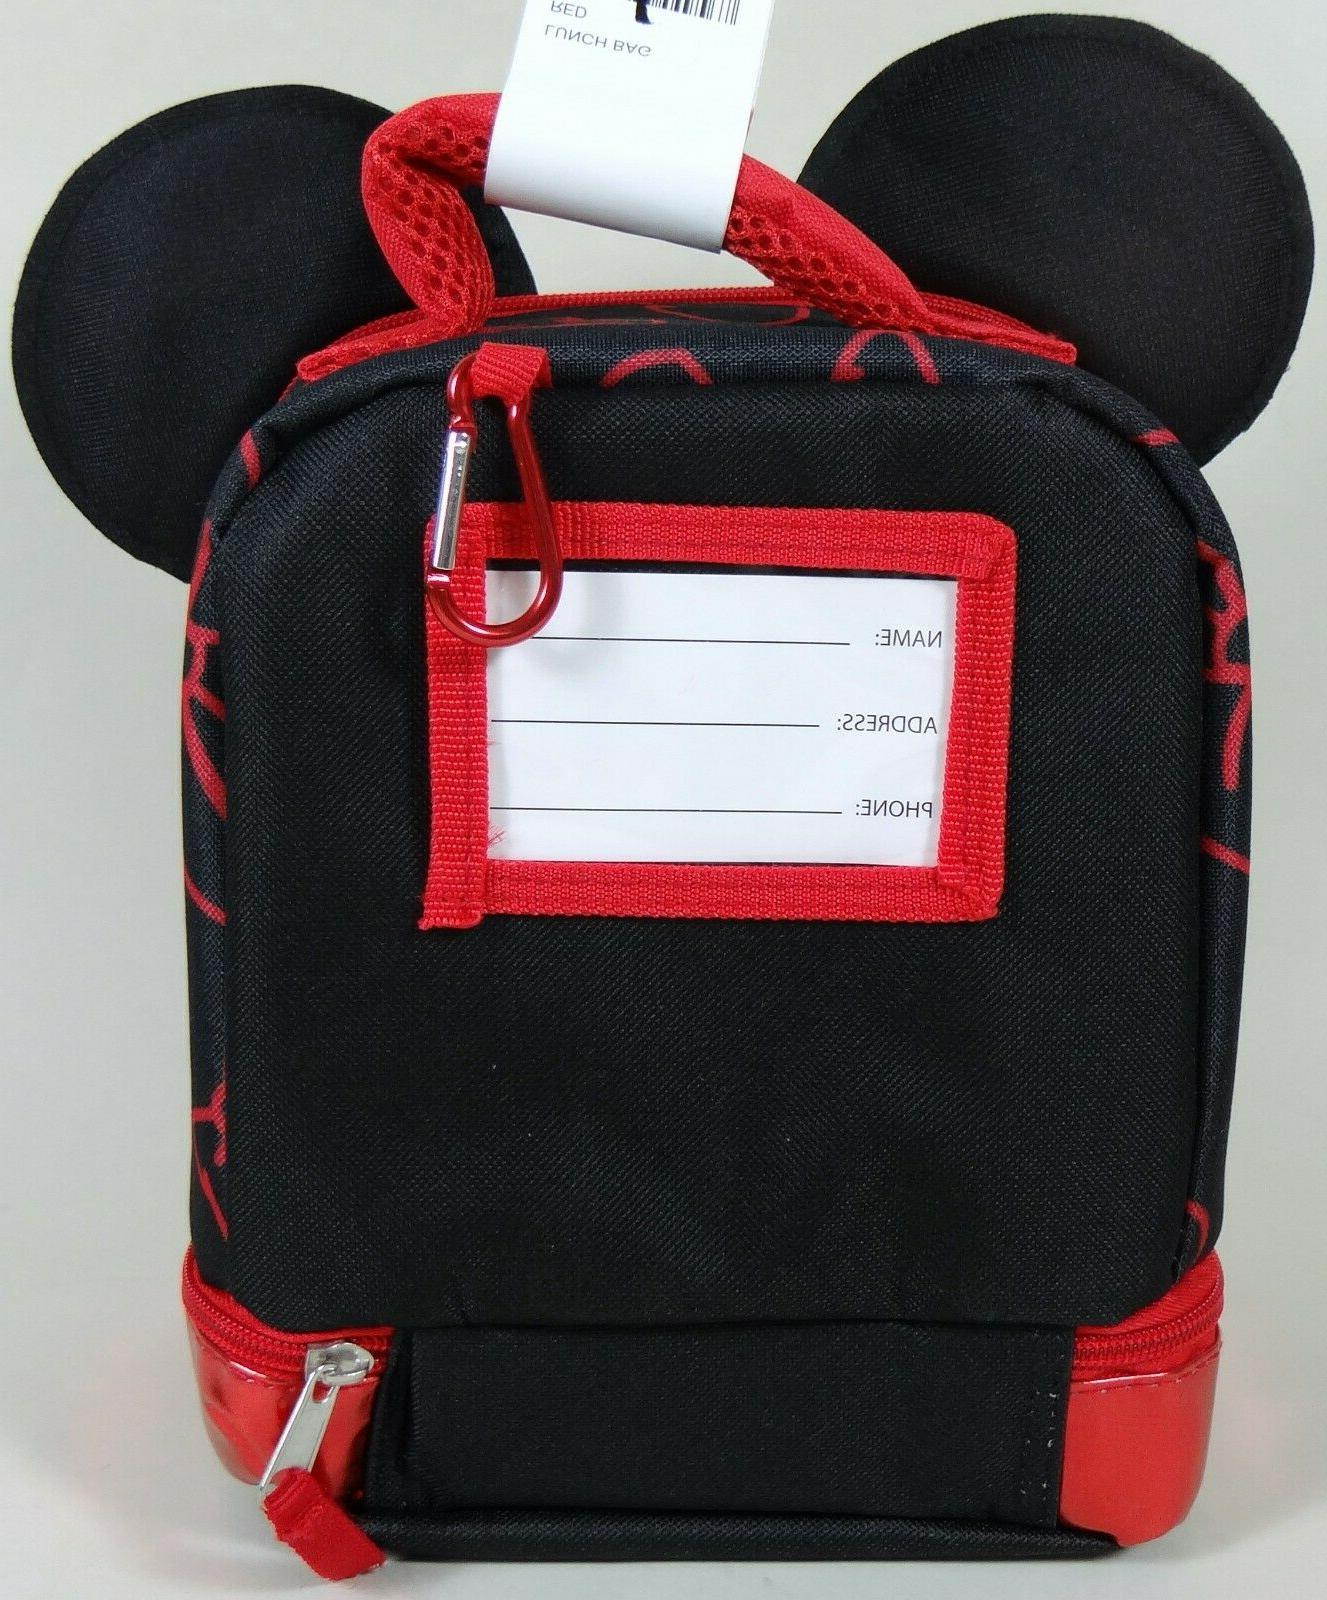 Disney Minnie Mouse Lunch Box Bag New with Damage